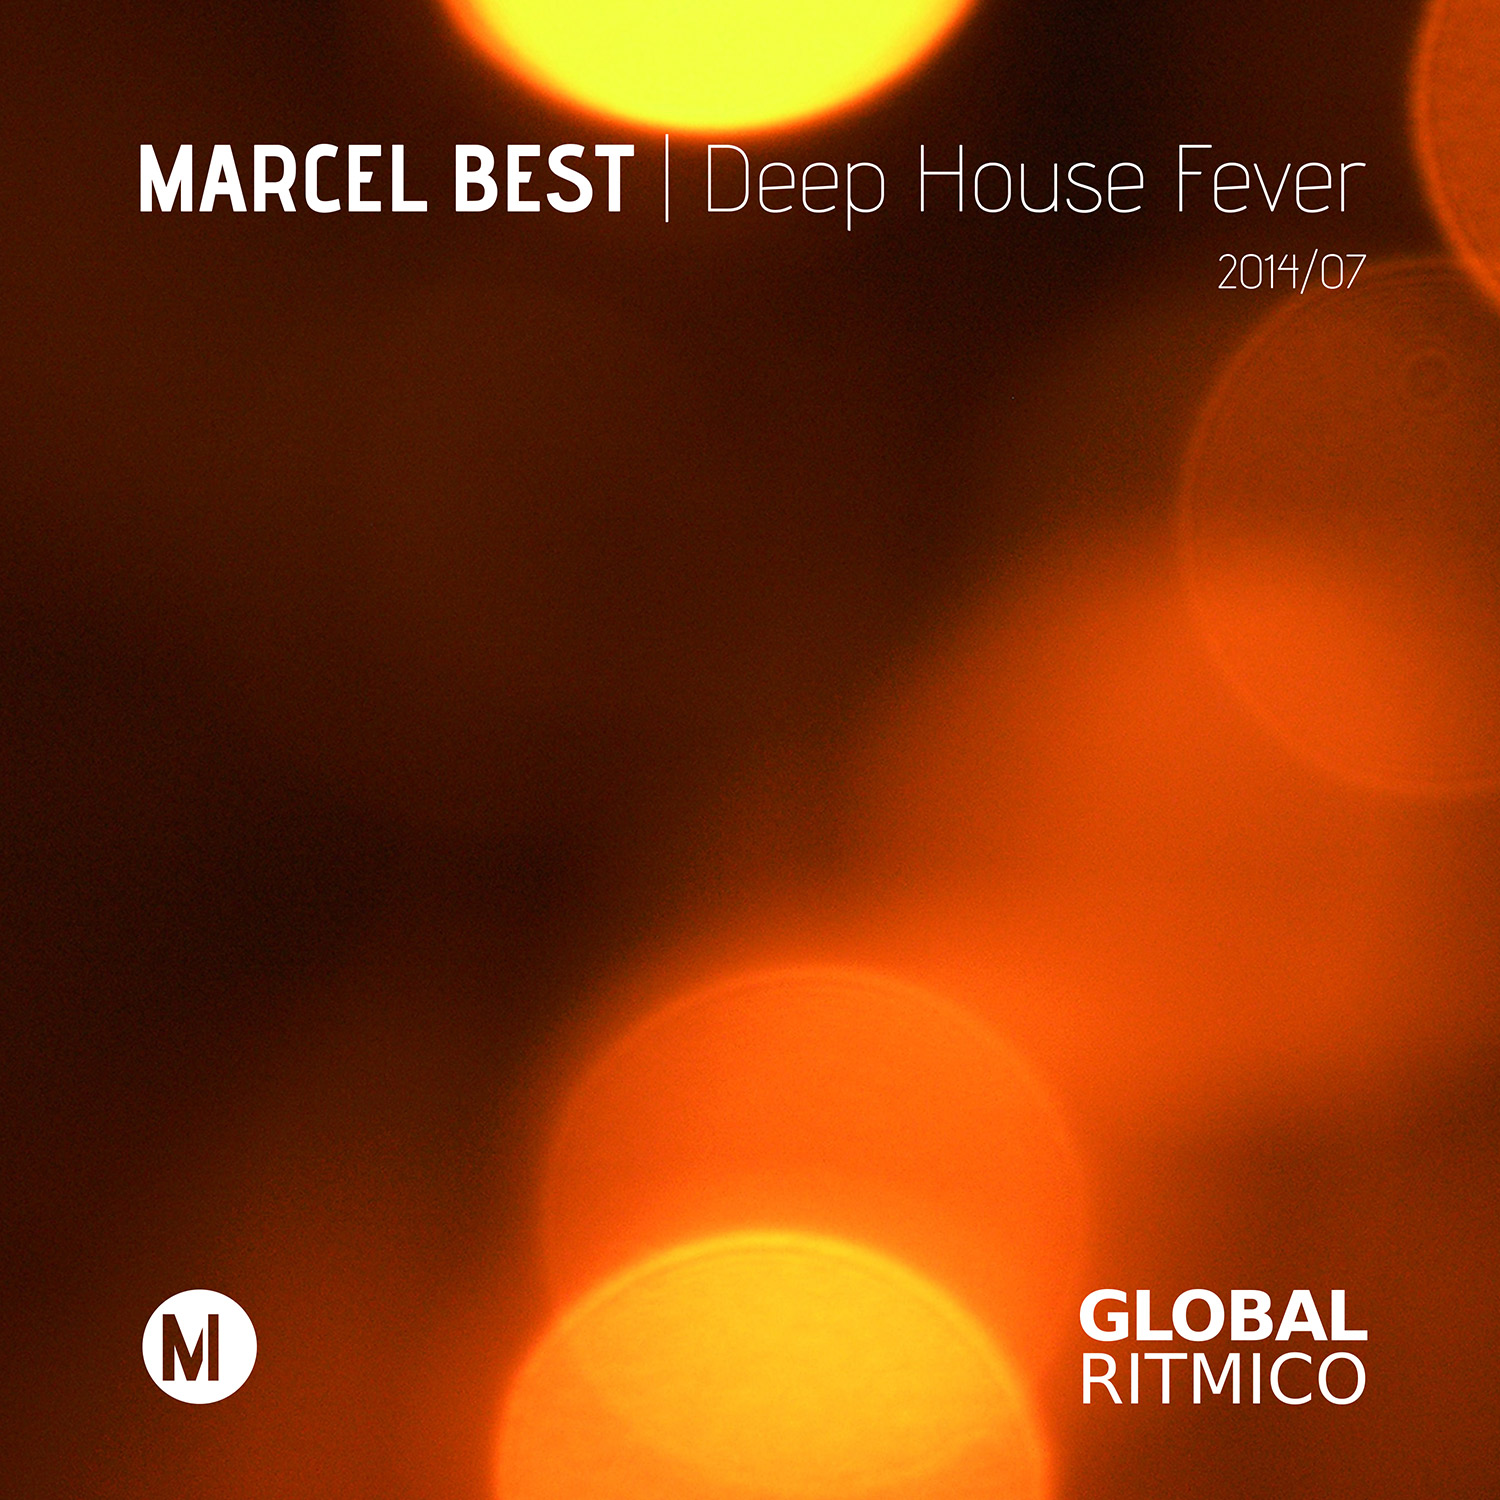 Marcel Best – Deep House Fever 2014 07